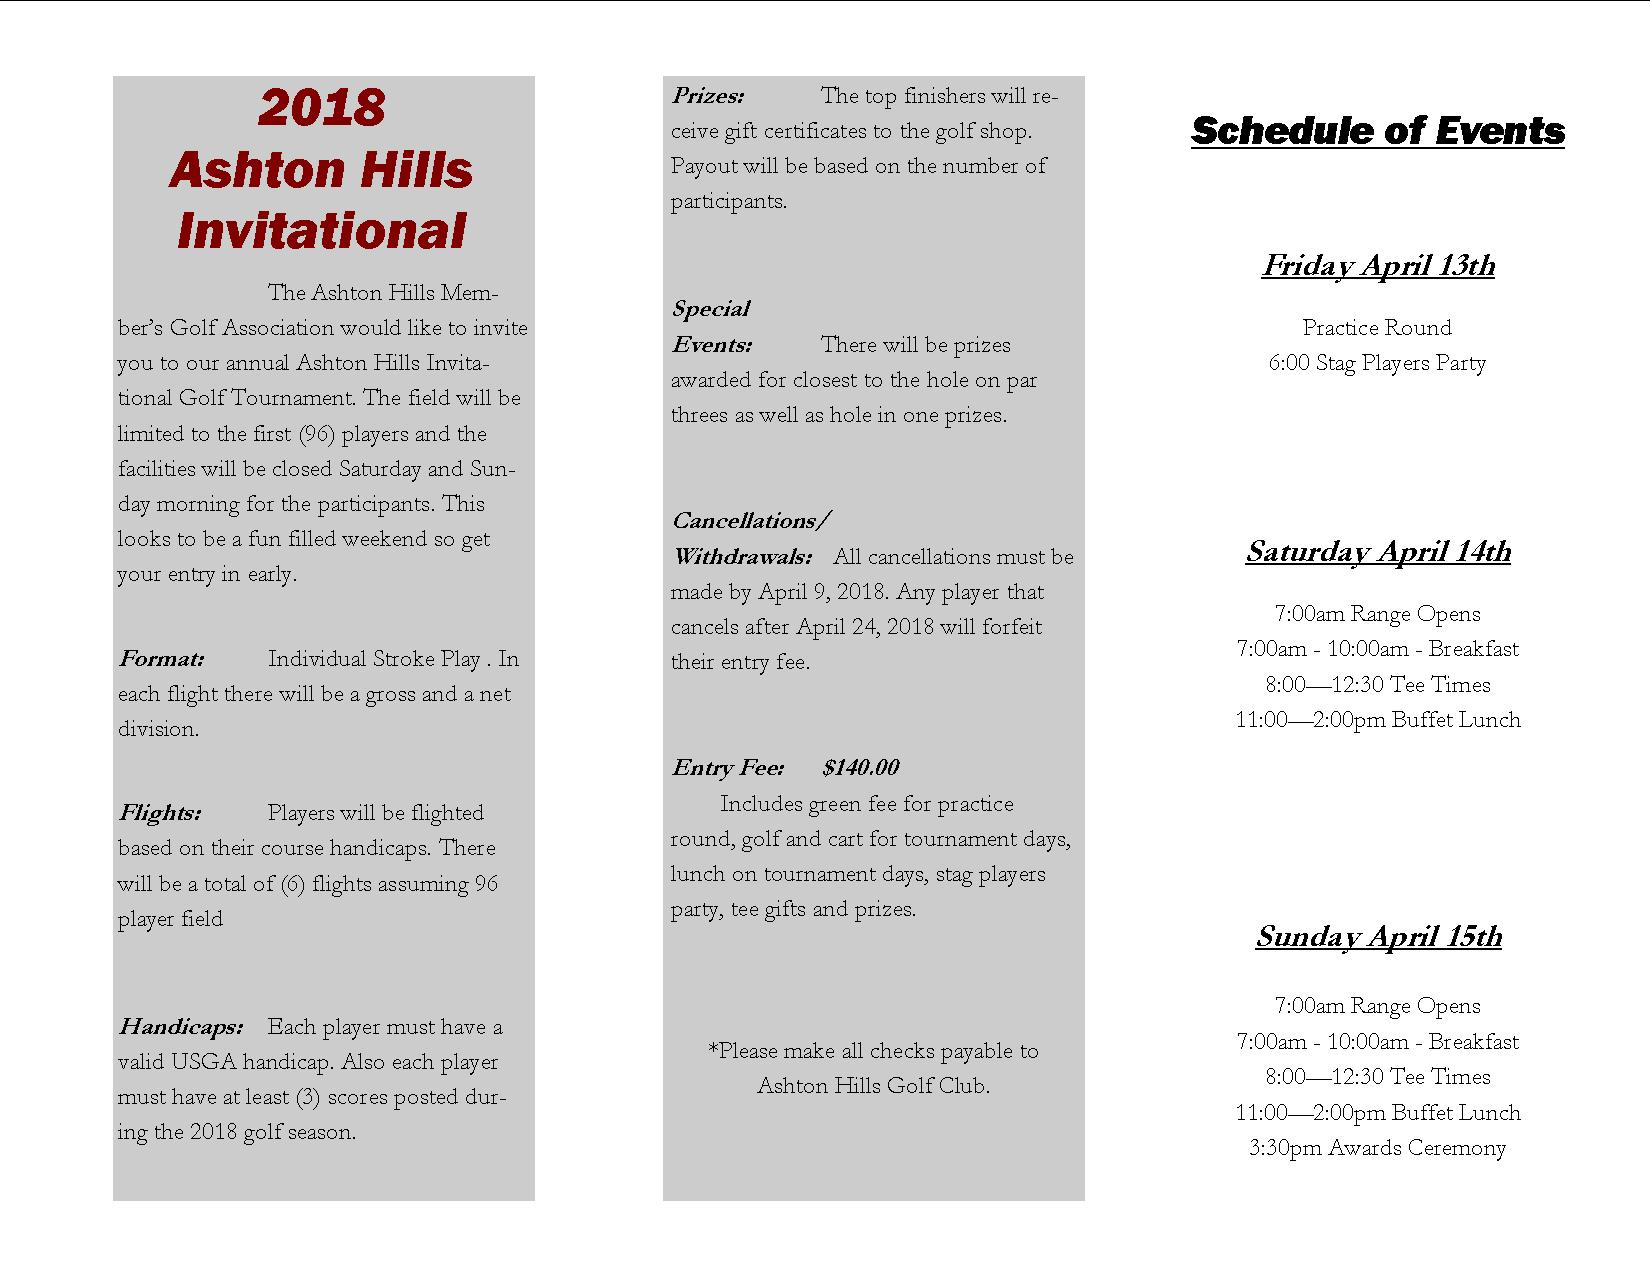 2018 AH Invitational